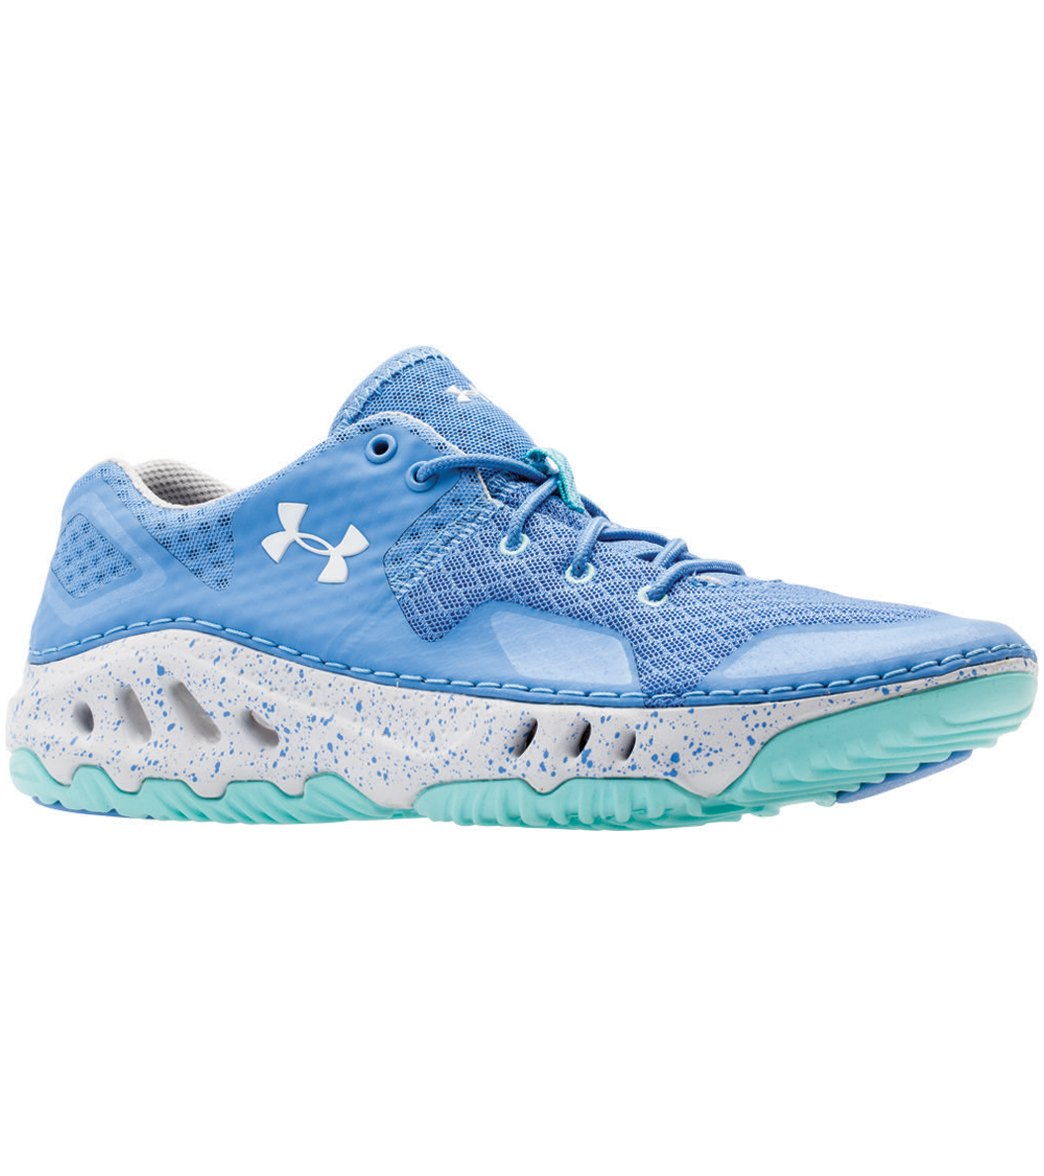 8b21a8a11ae1 Under Armour Women s Hydro Spin Water Shoes at SwimOutlet.com ...